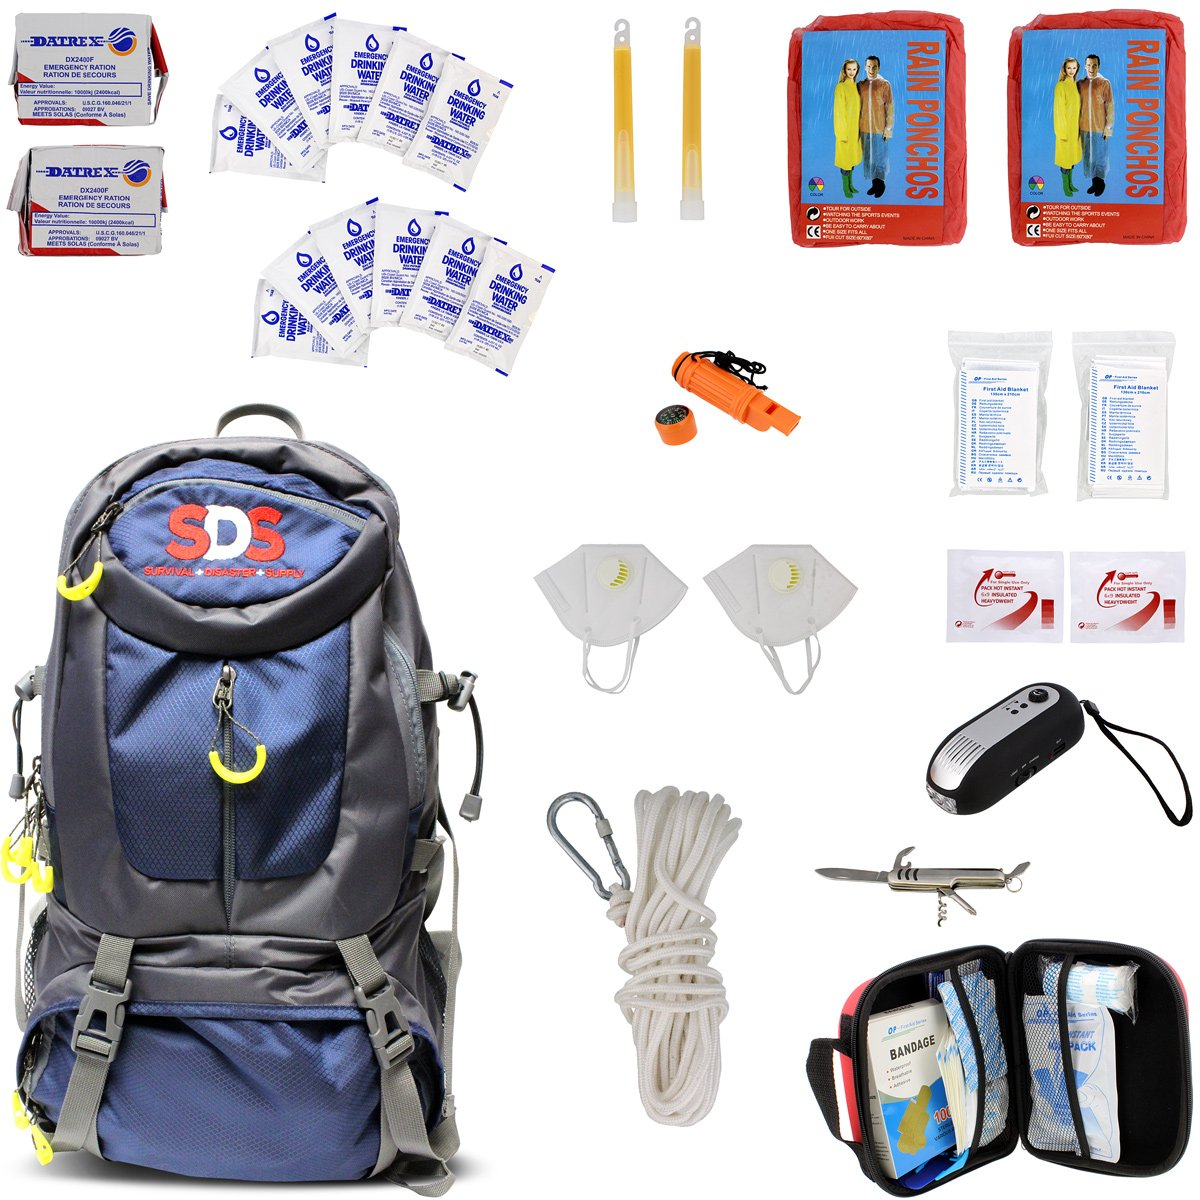 SDS | Survival Backpack Emergency Disaster Prepper Gear Bag Food Kit Earthquake, Zombie Apocalypse Supplies 2 Person 72 Hour by SDS